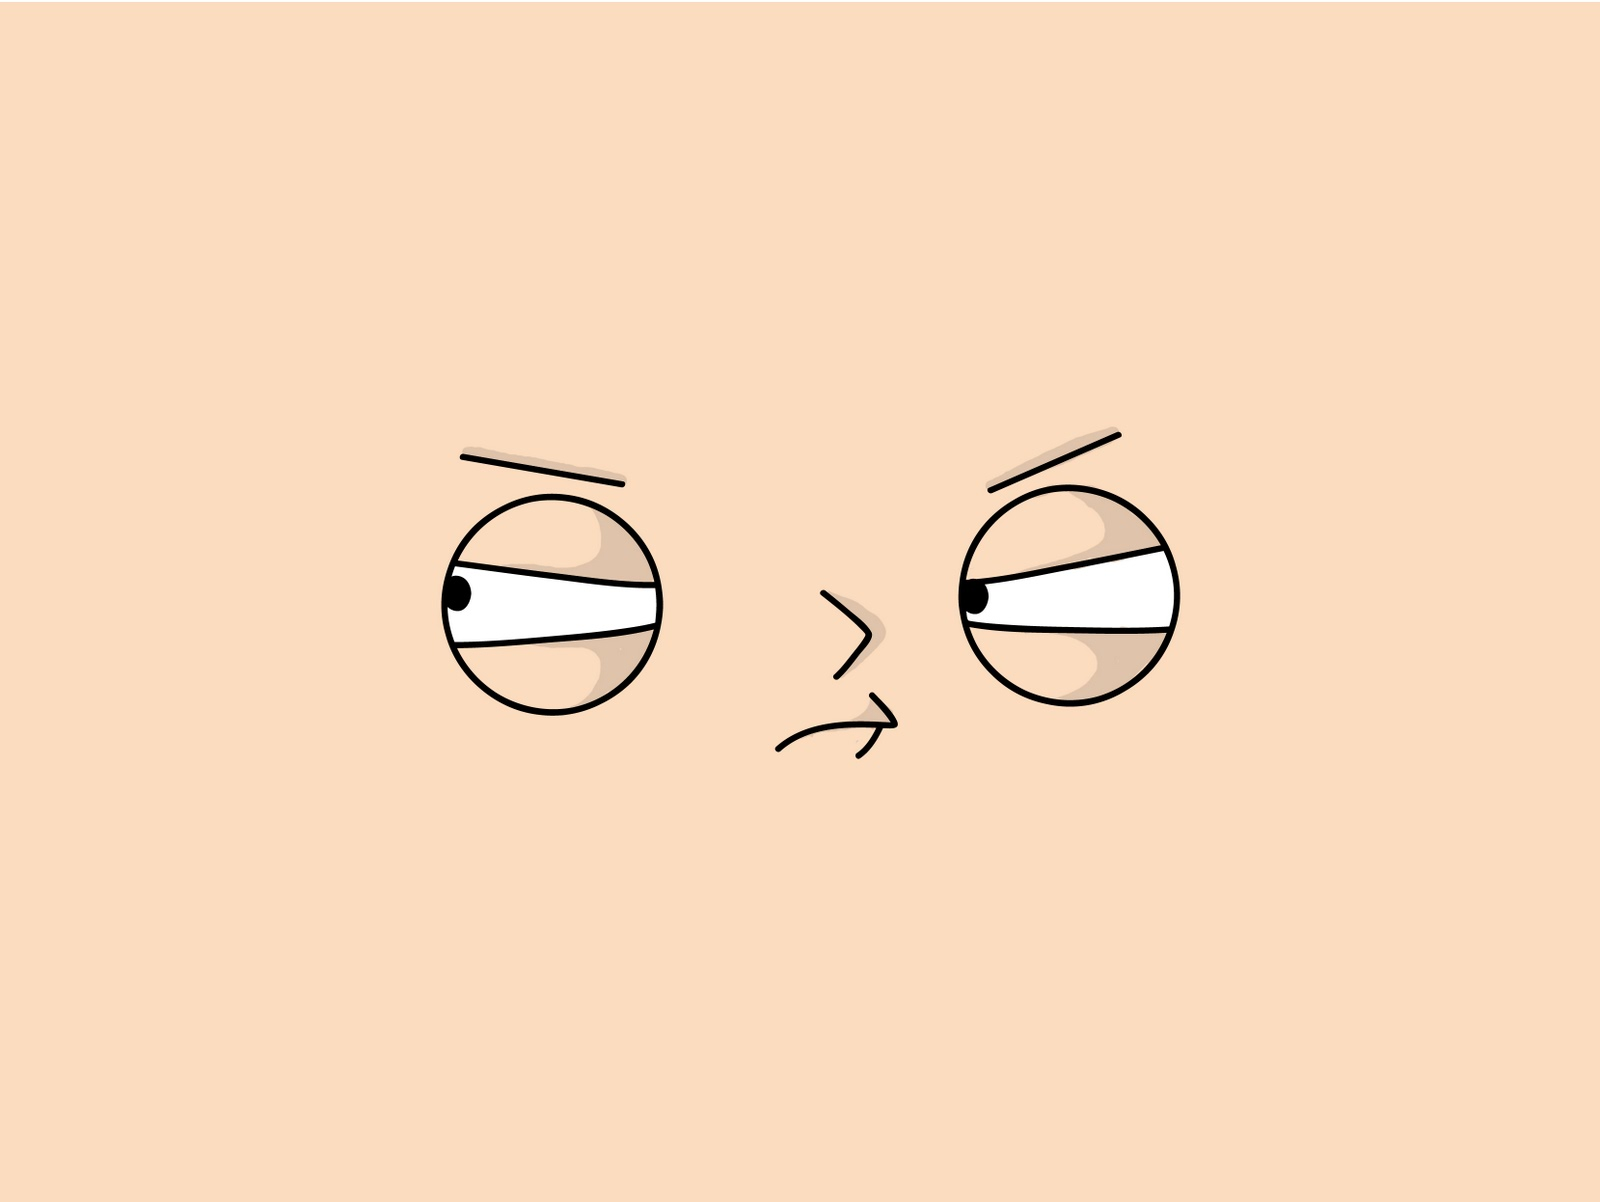 Stewie2Cfamilyguywallpaperfaceuniquecooljpg 1600x1202